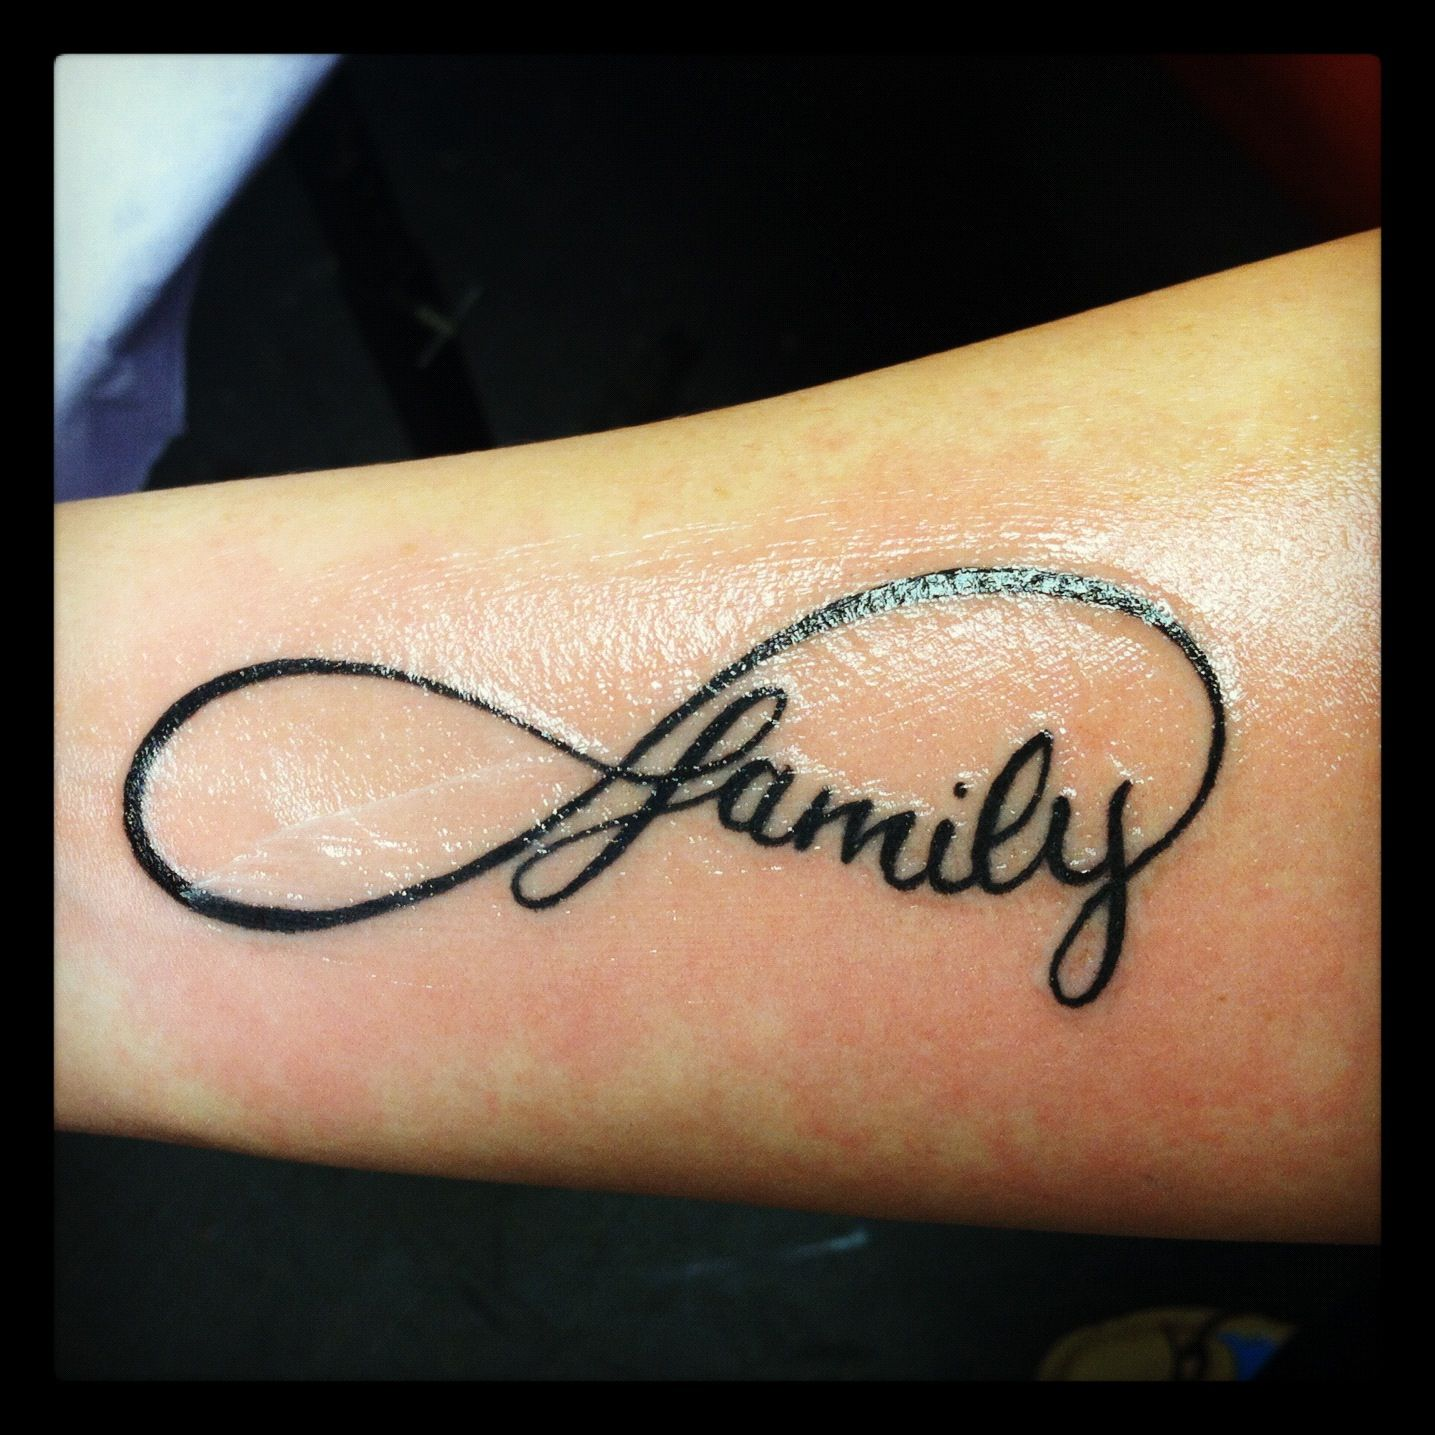 Tattoo Ideas For Family: I Love My Family Tattoo